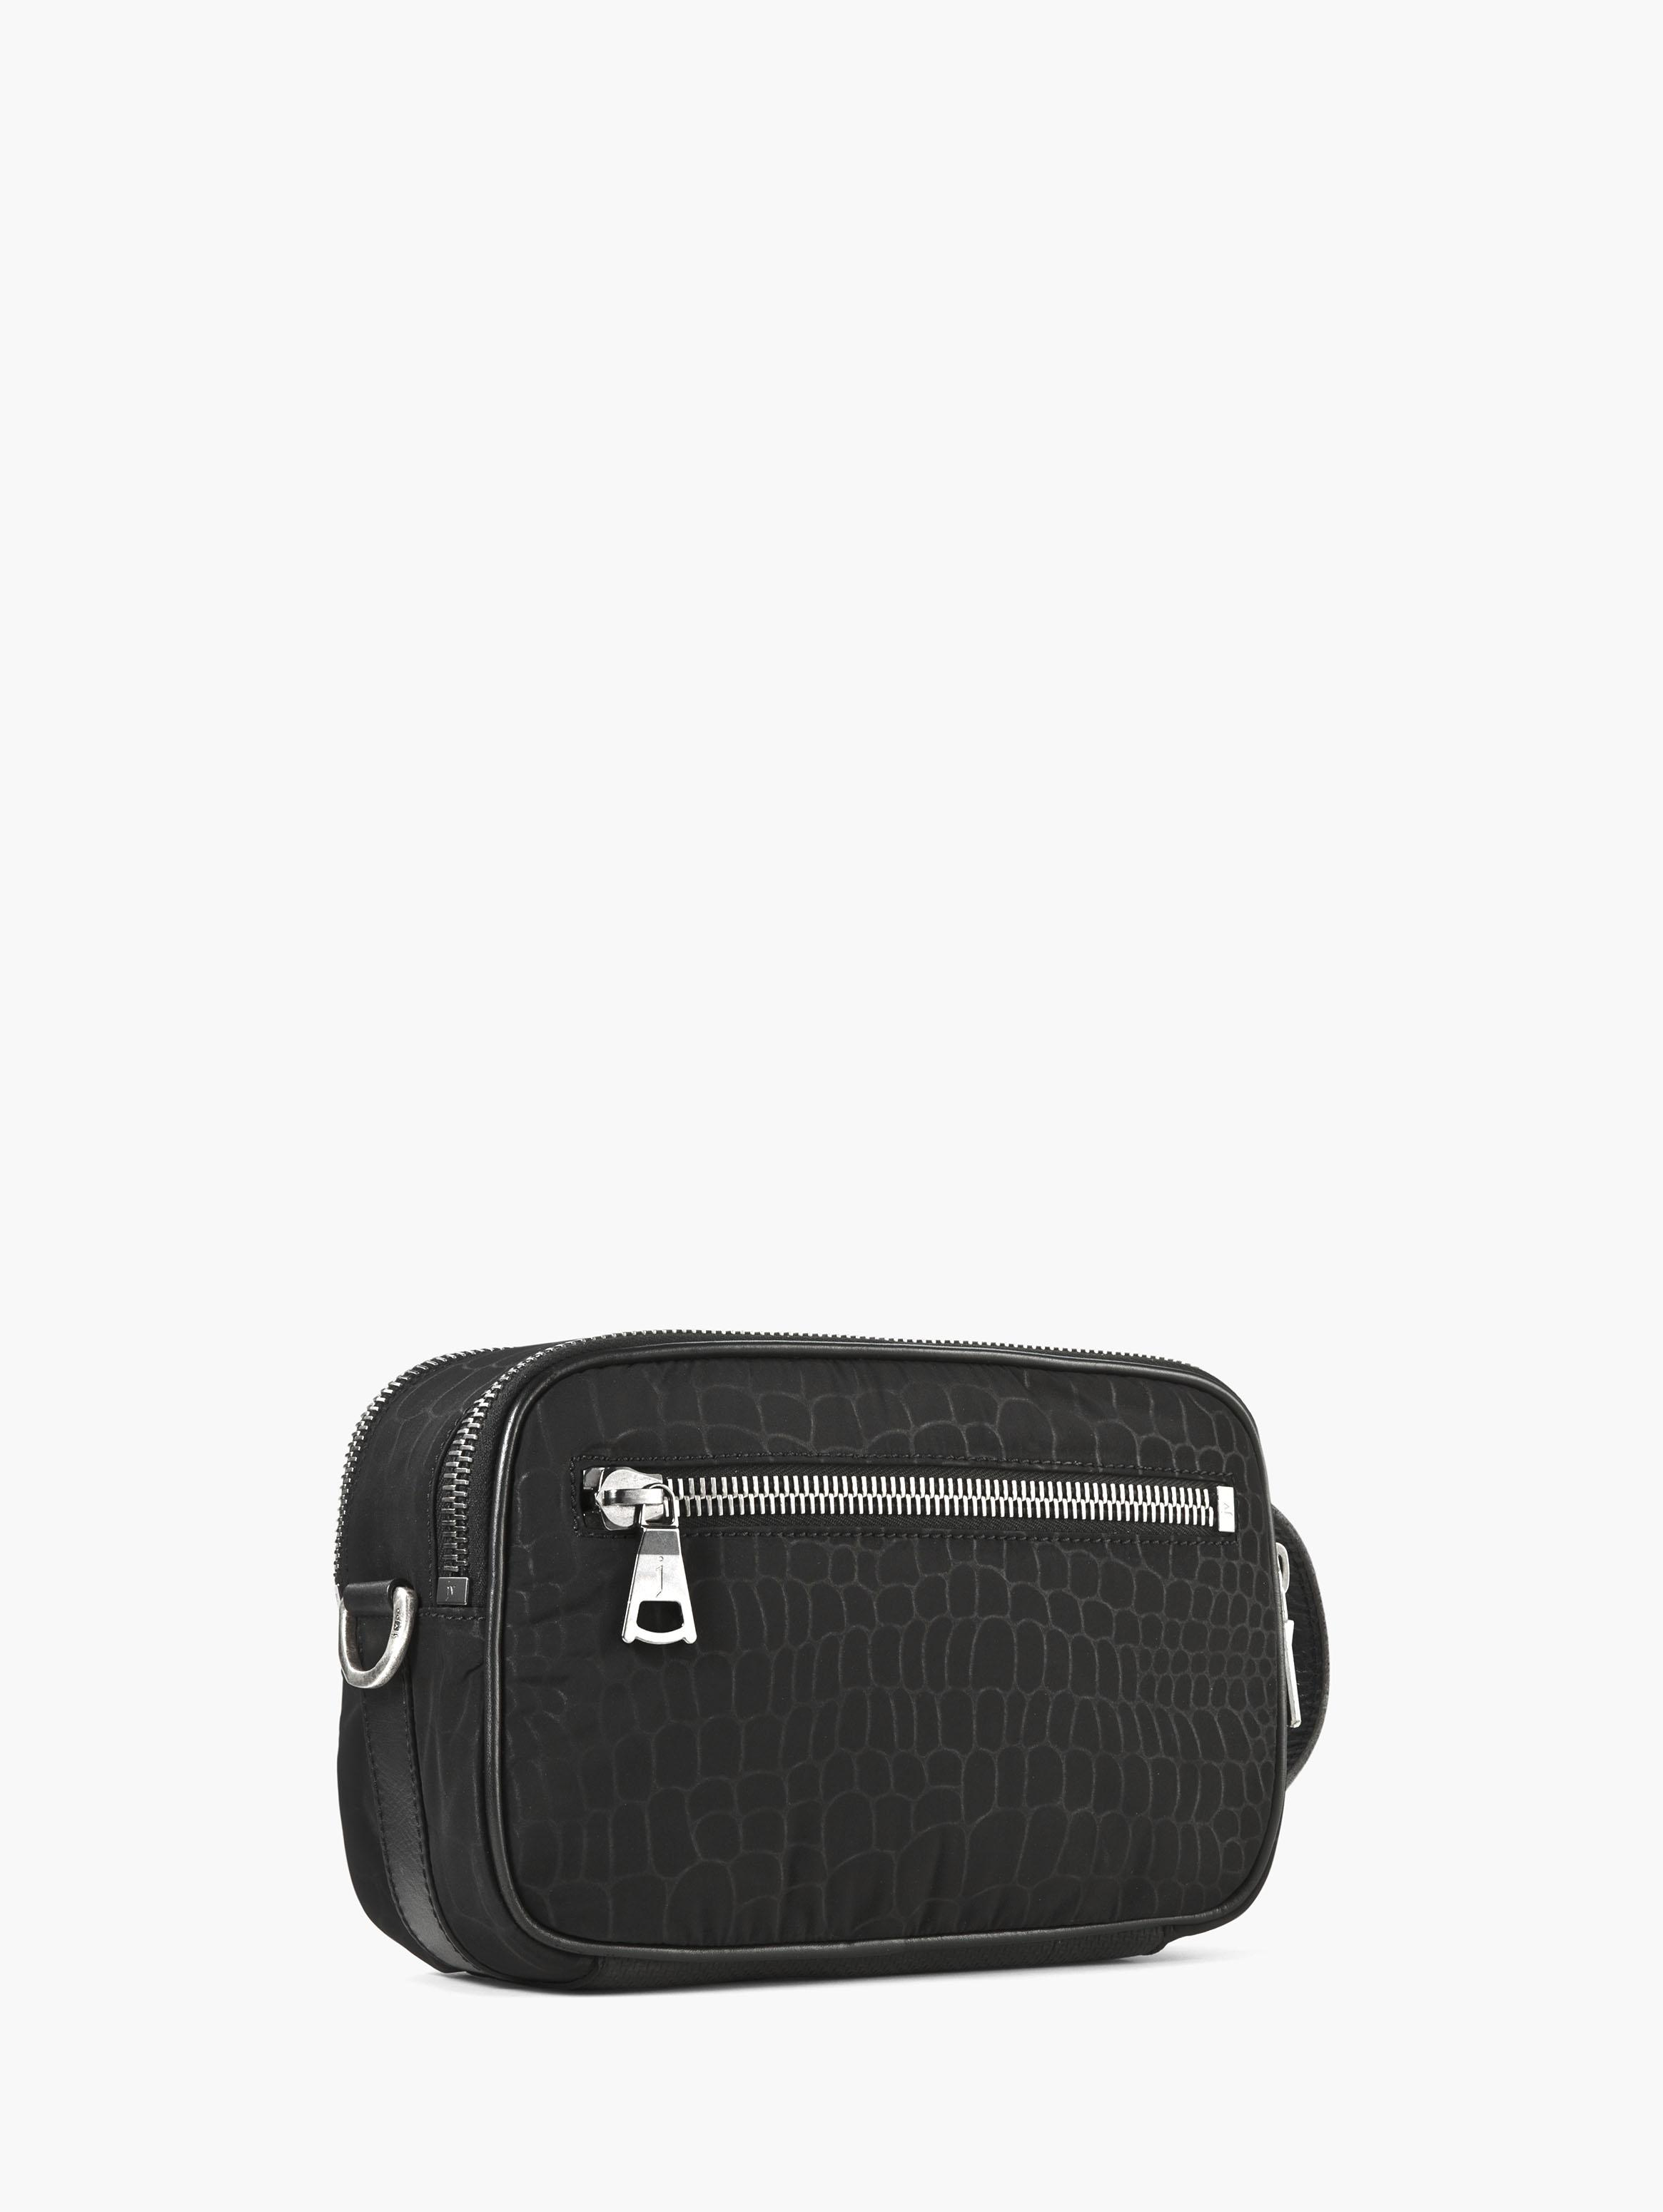 Croc-Printed Nylon Dopp Kit